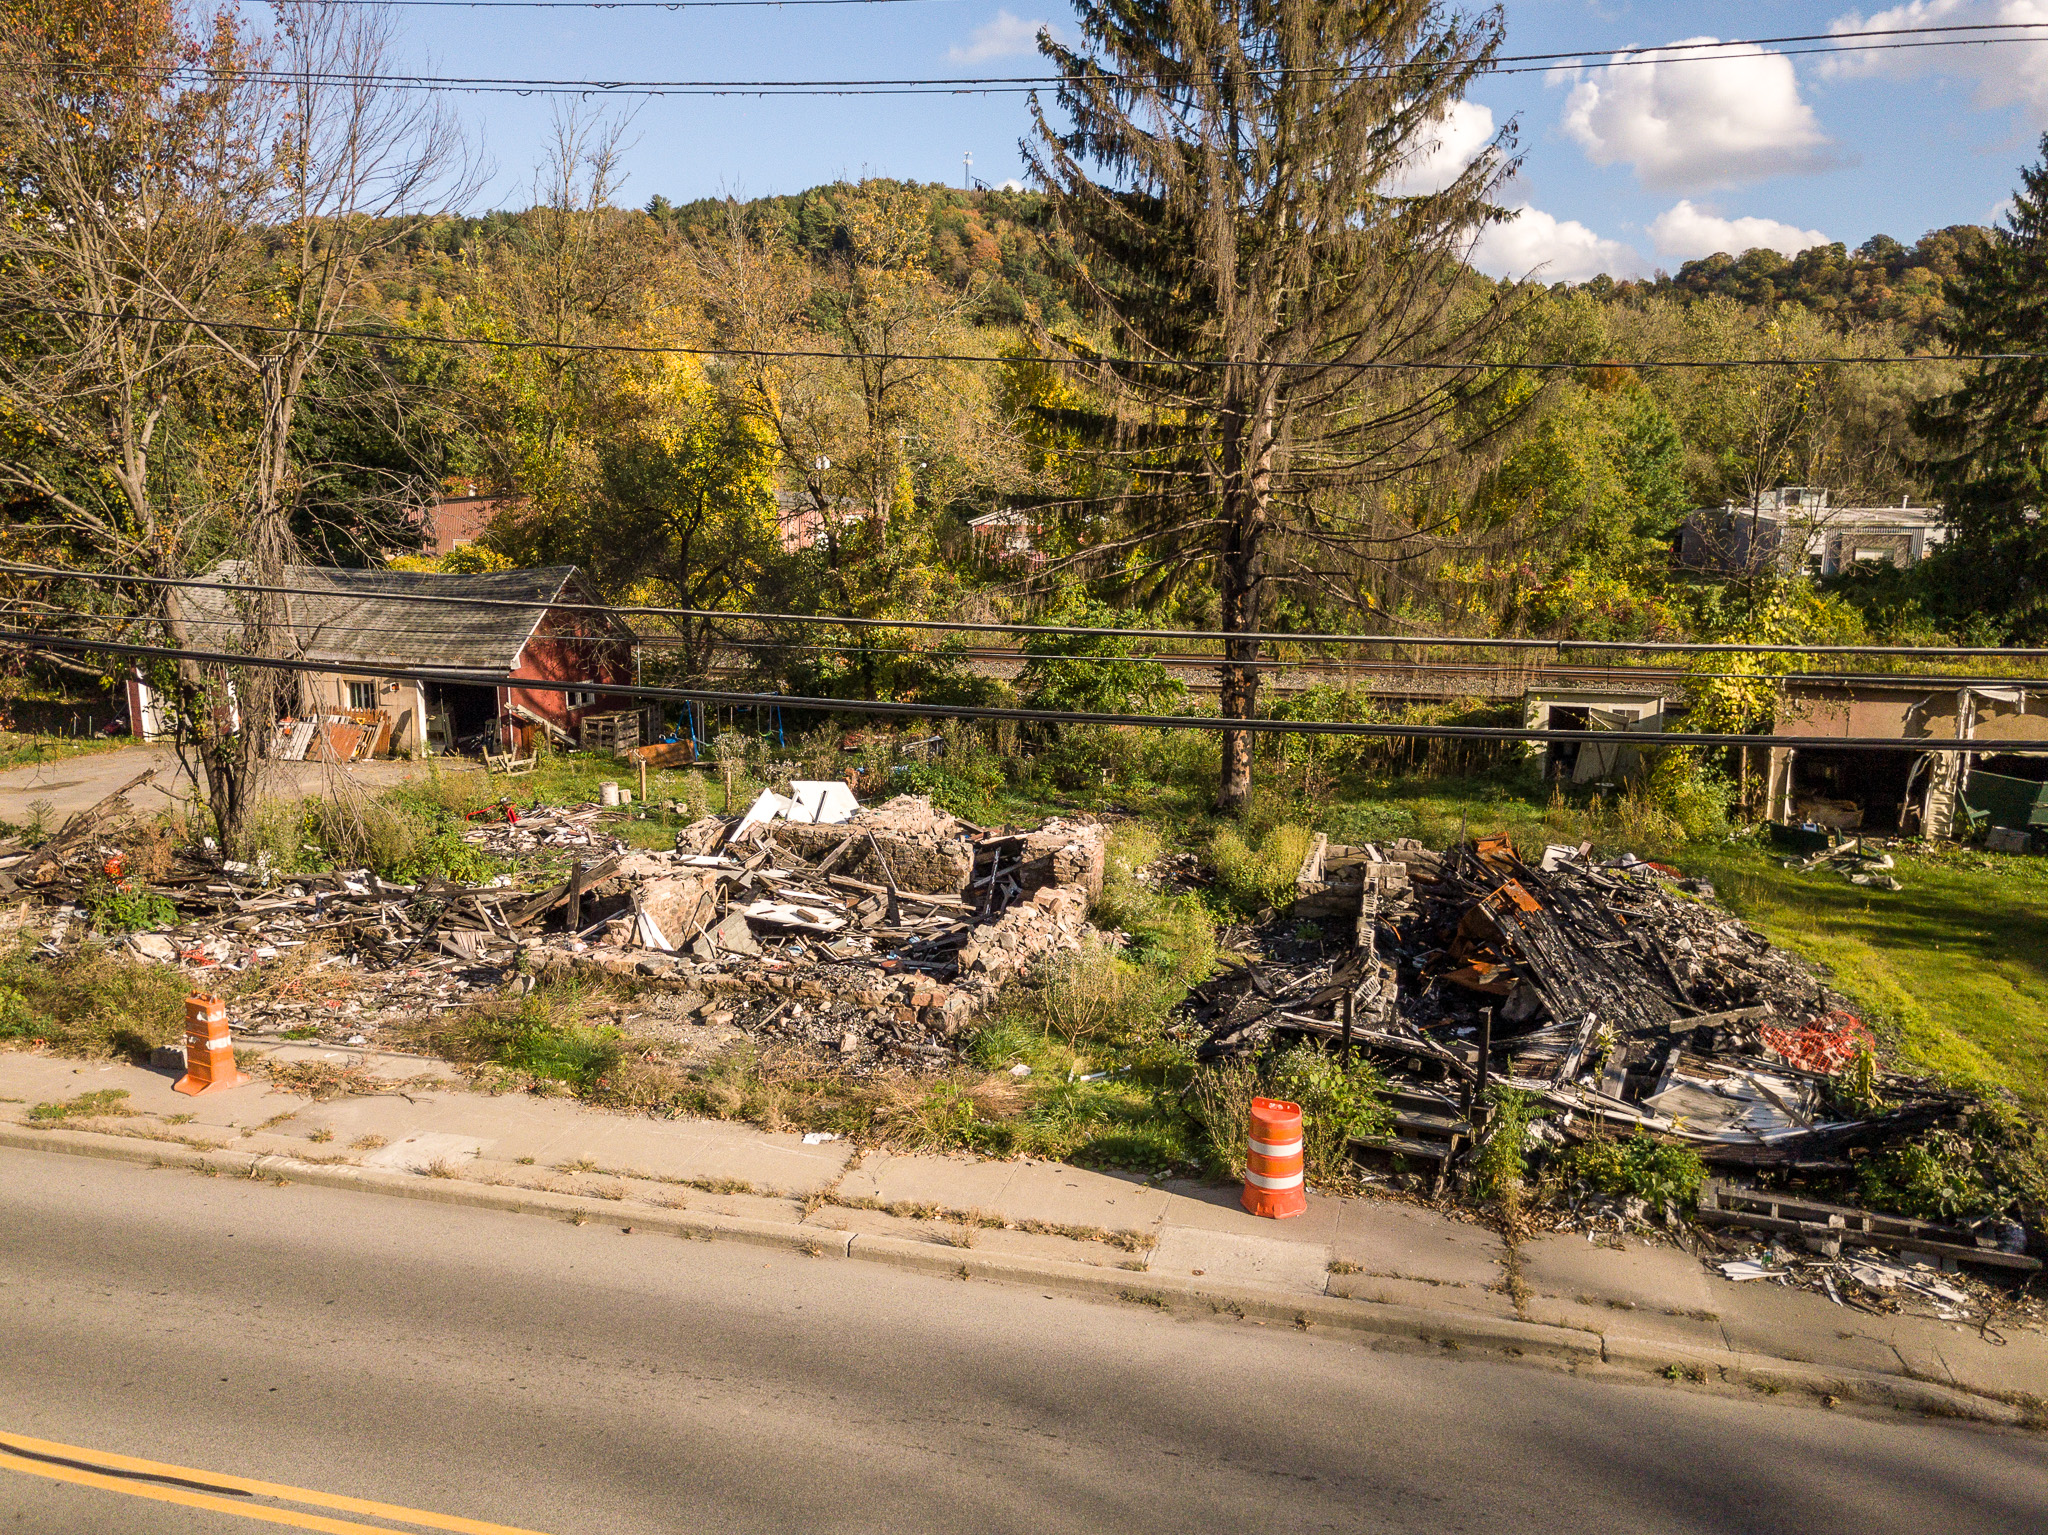 national grid pays 658 000 to settle 2018 gas explosion in little falls my little falls gas explosion in little falls